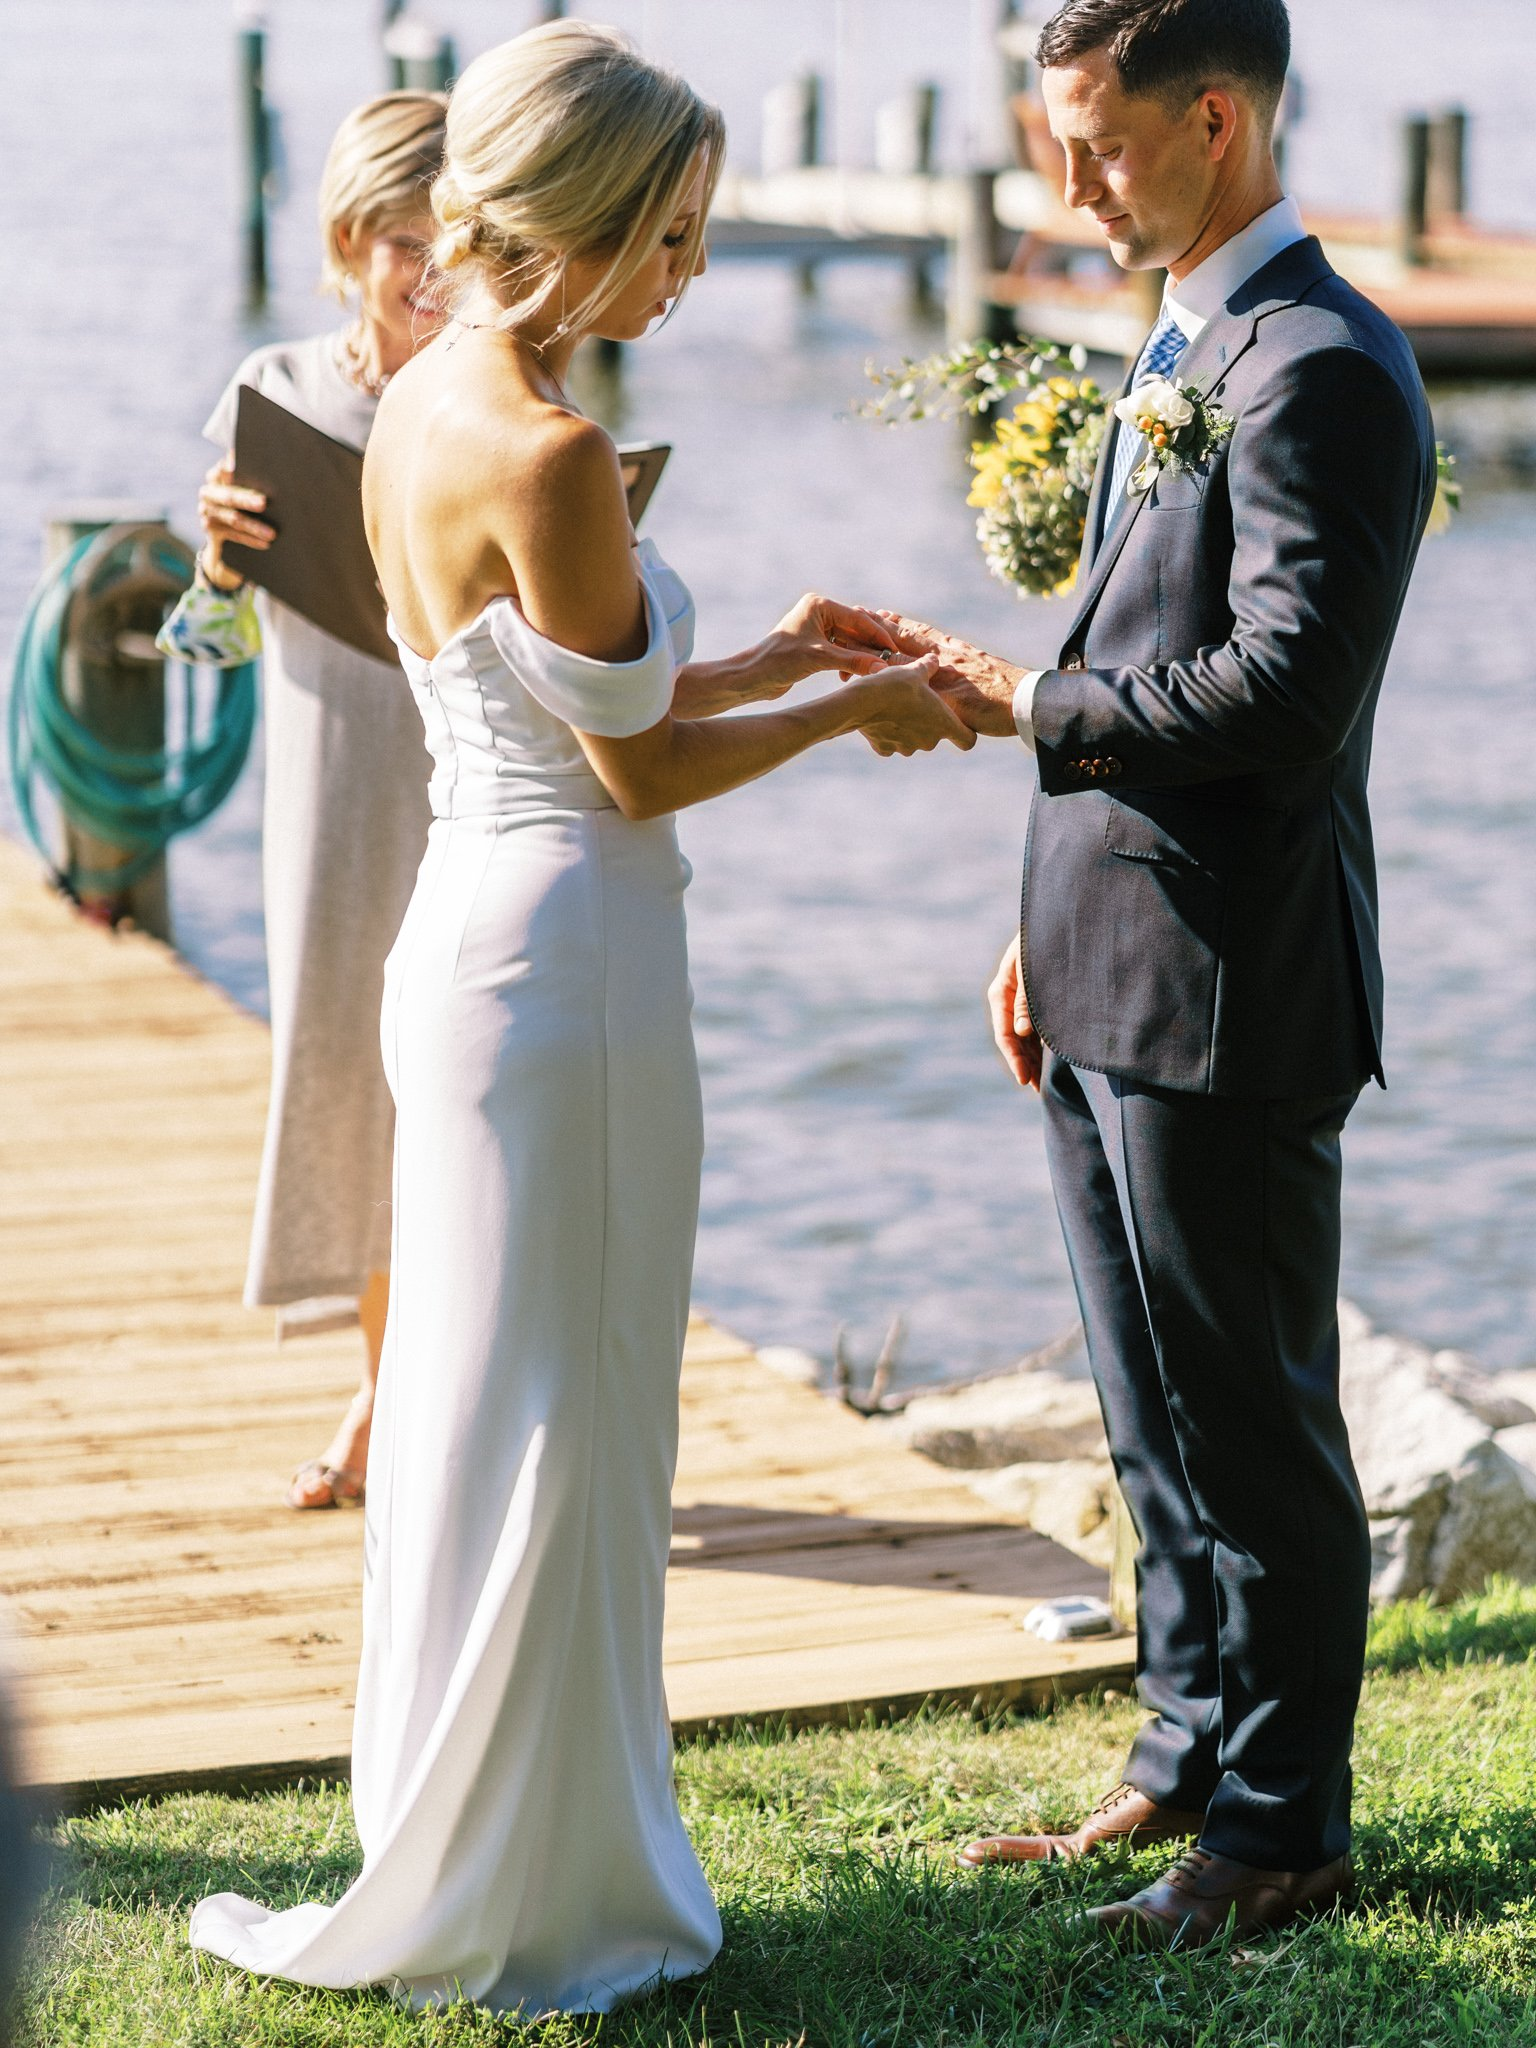 Gray_Joiner_e. losinio photography_annapolis-maryland-waterfront-elopement-183